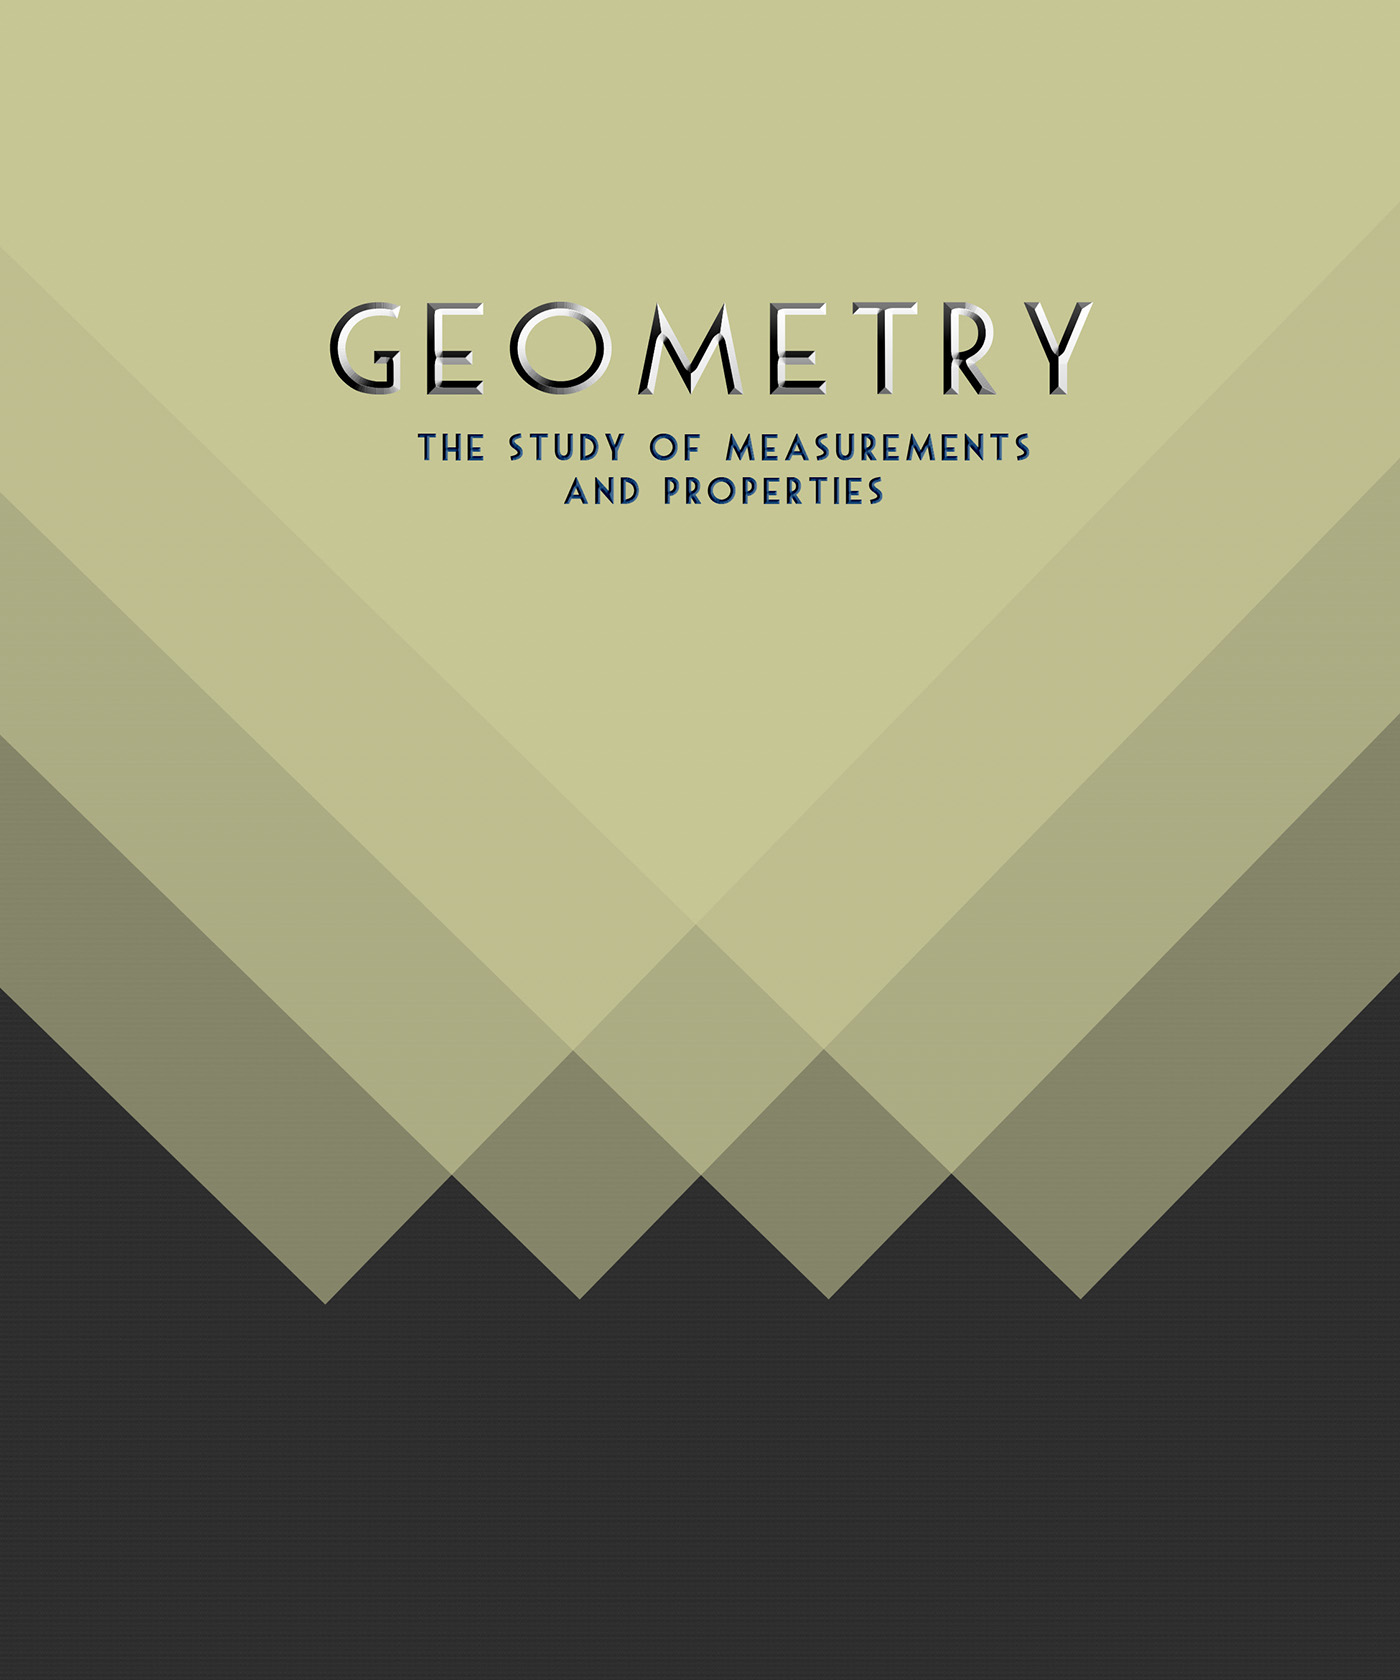 Geometry Book Cover on Behance